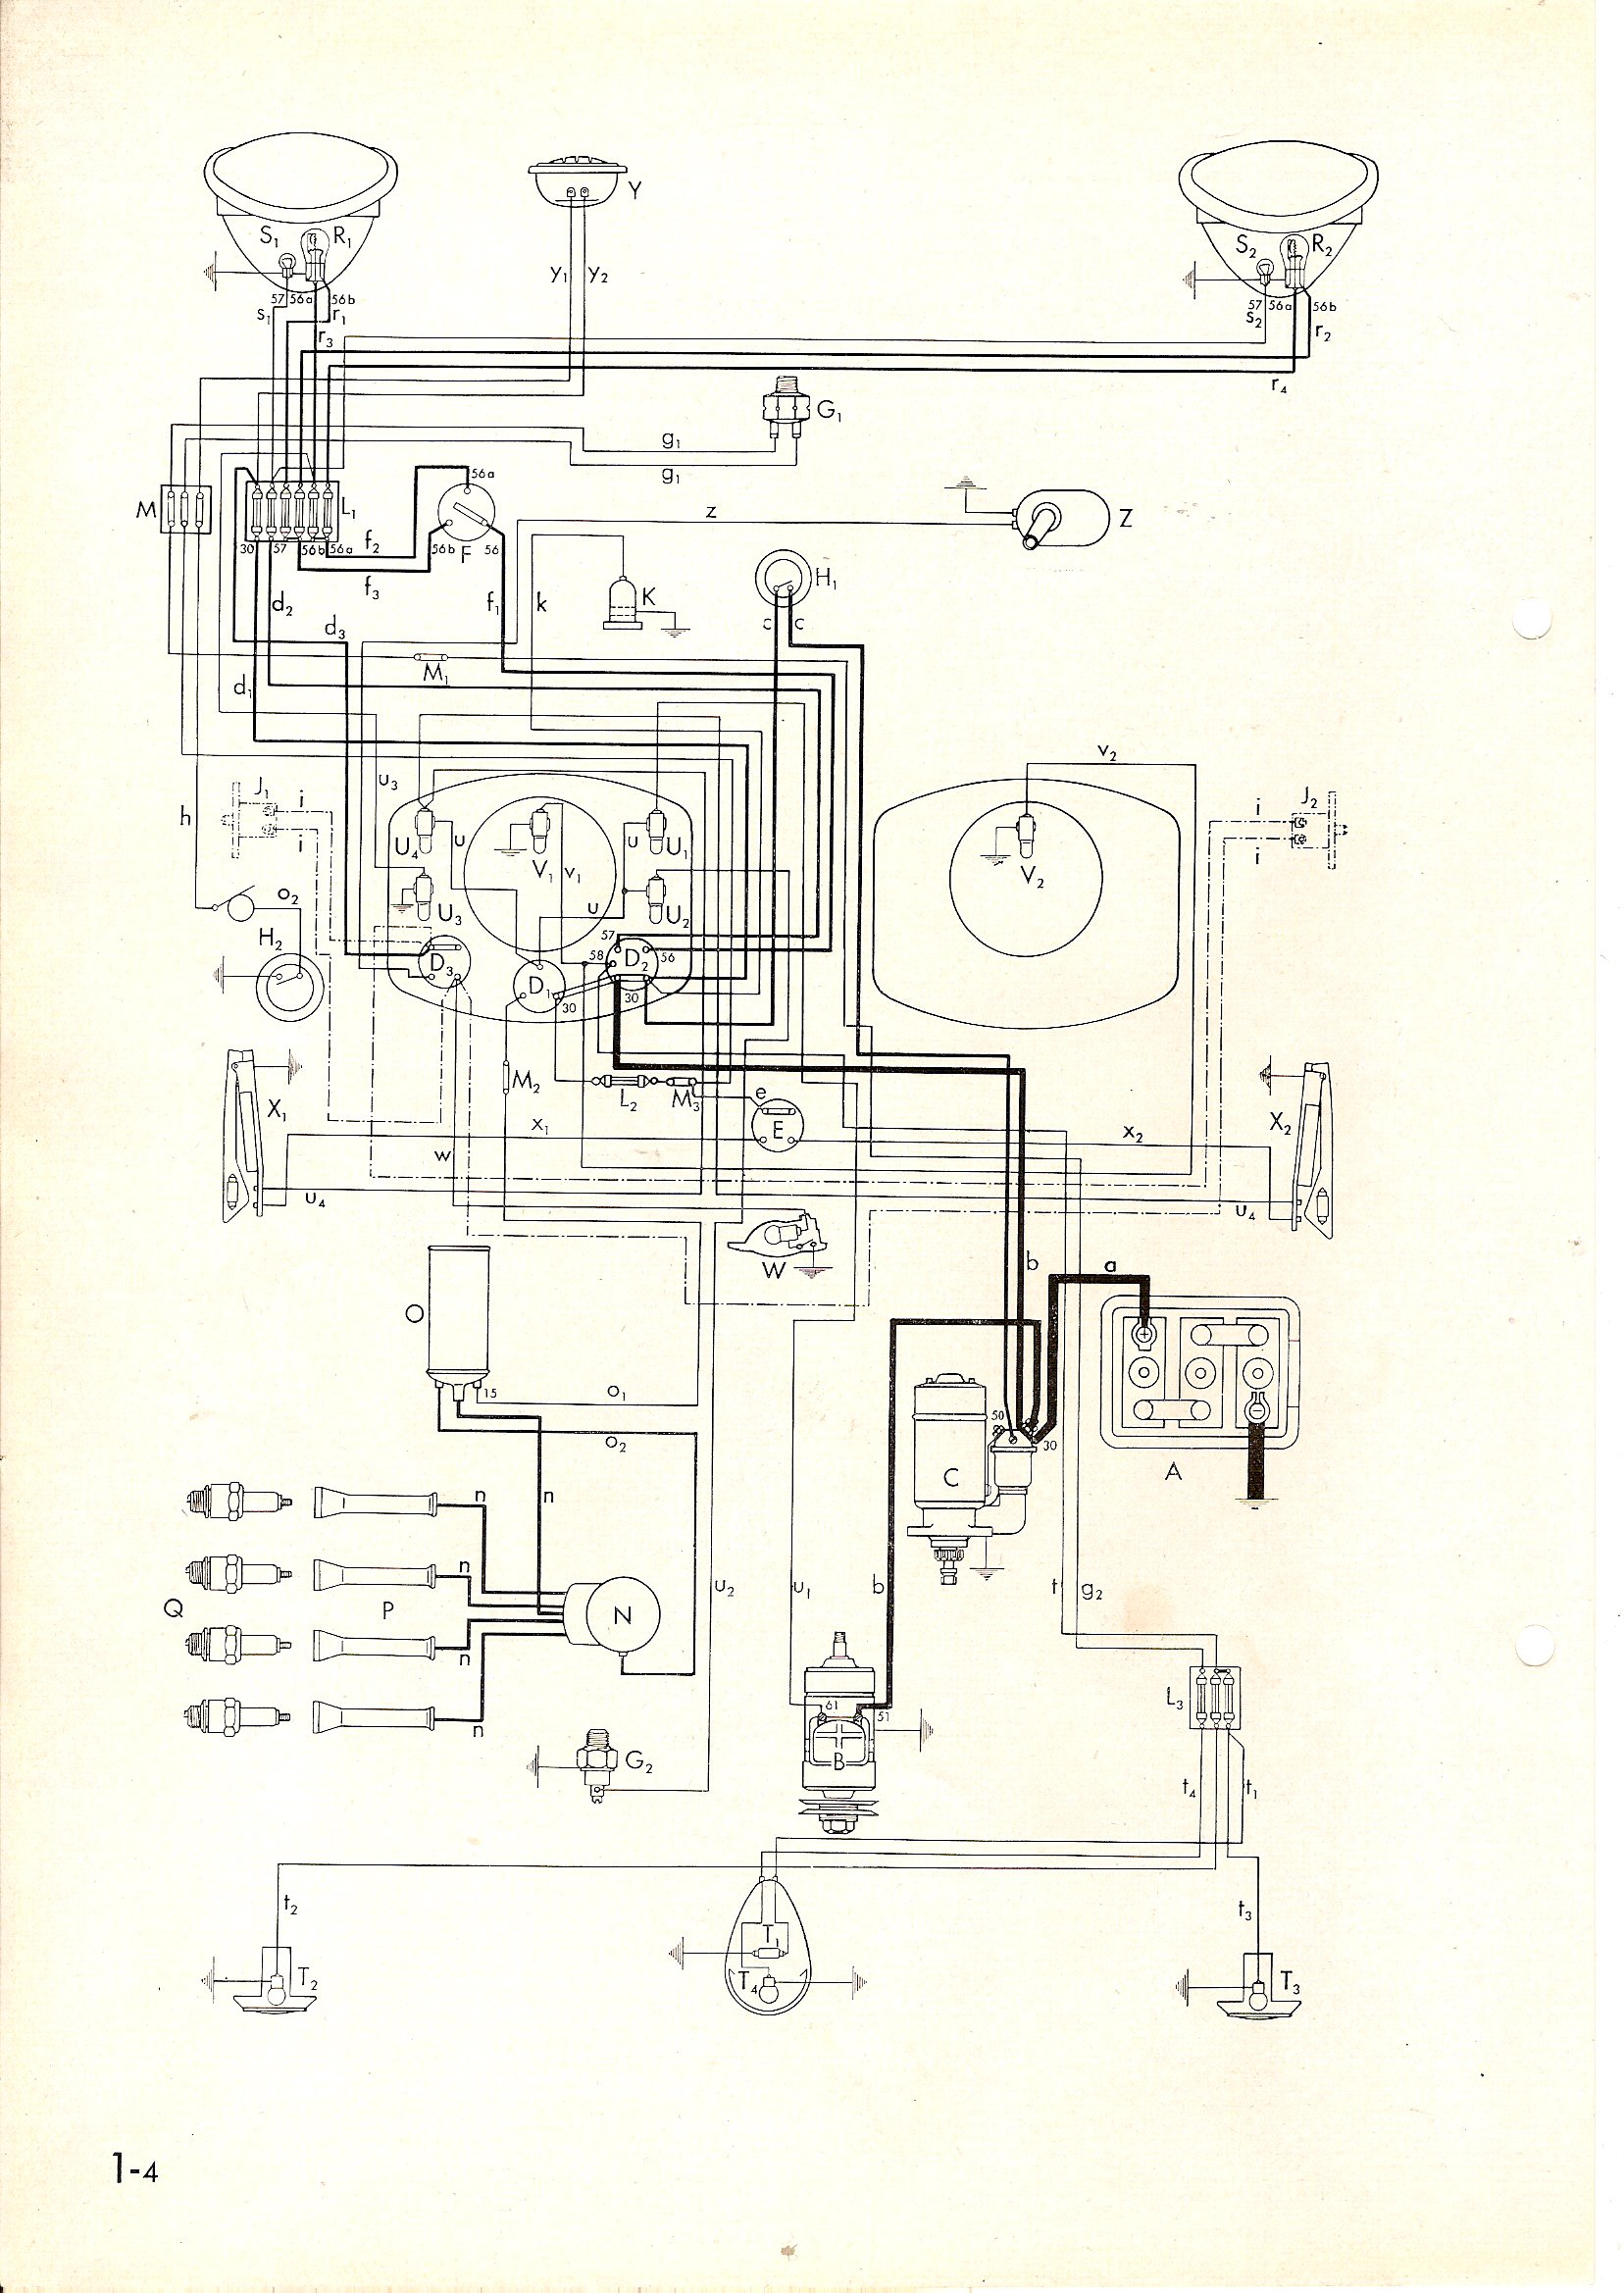 1973 vw beetle ignition coil wiring diagram blank template as well besides get free